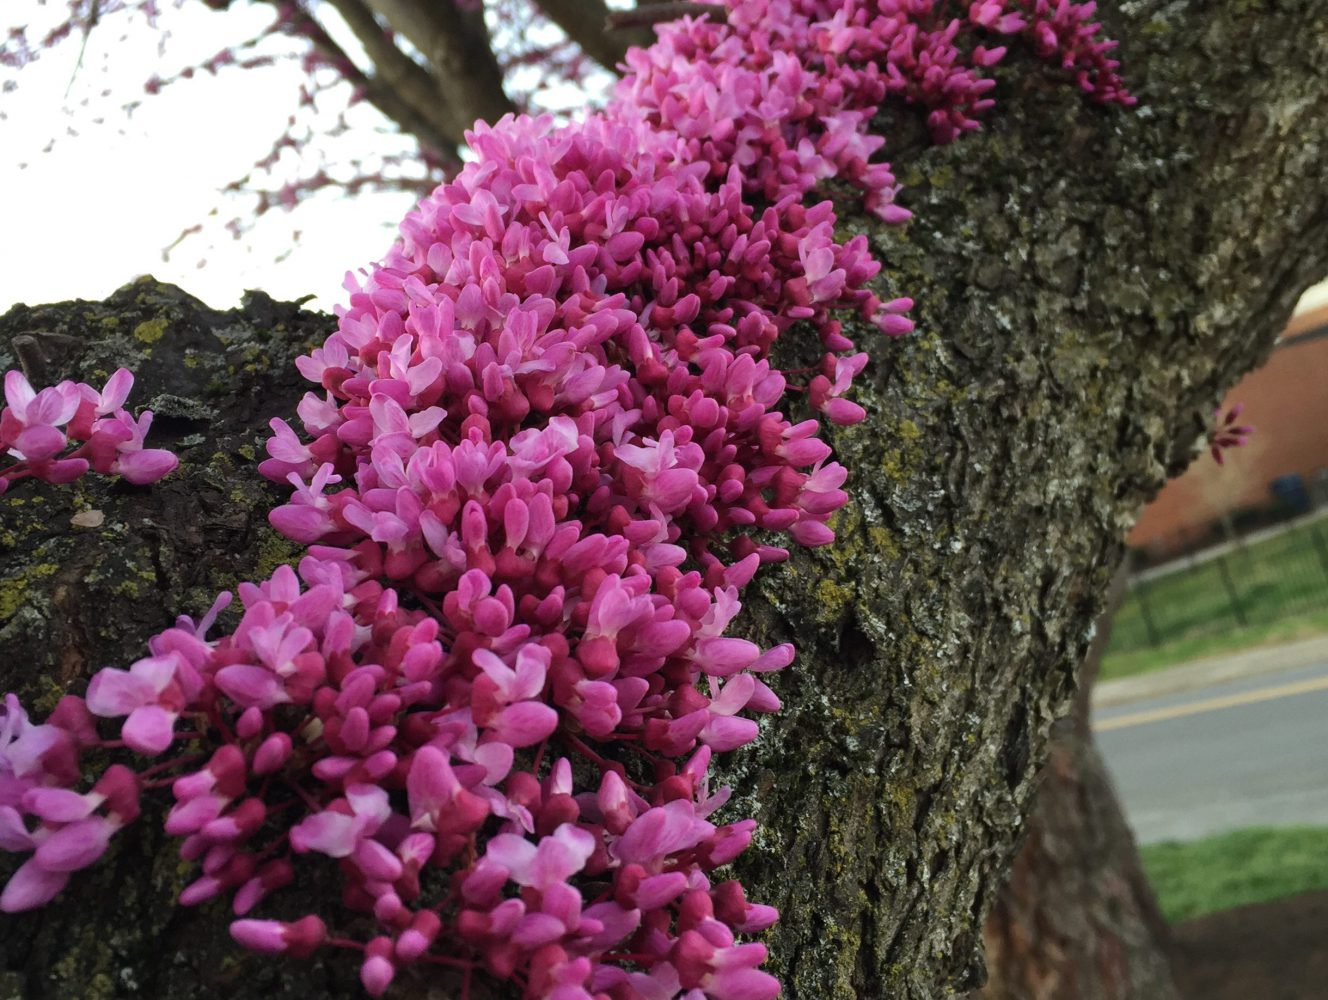 Pink flowers growing up a tree